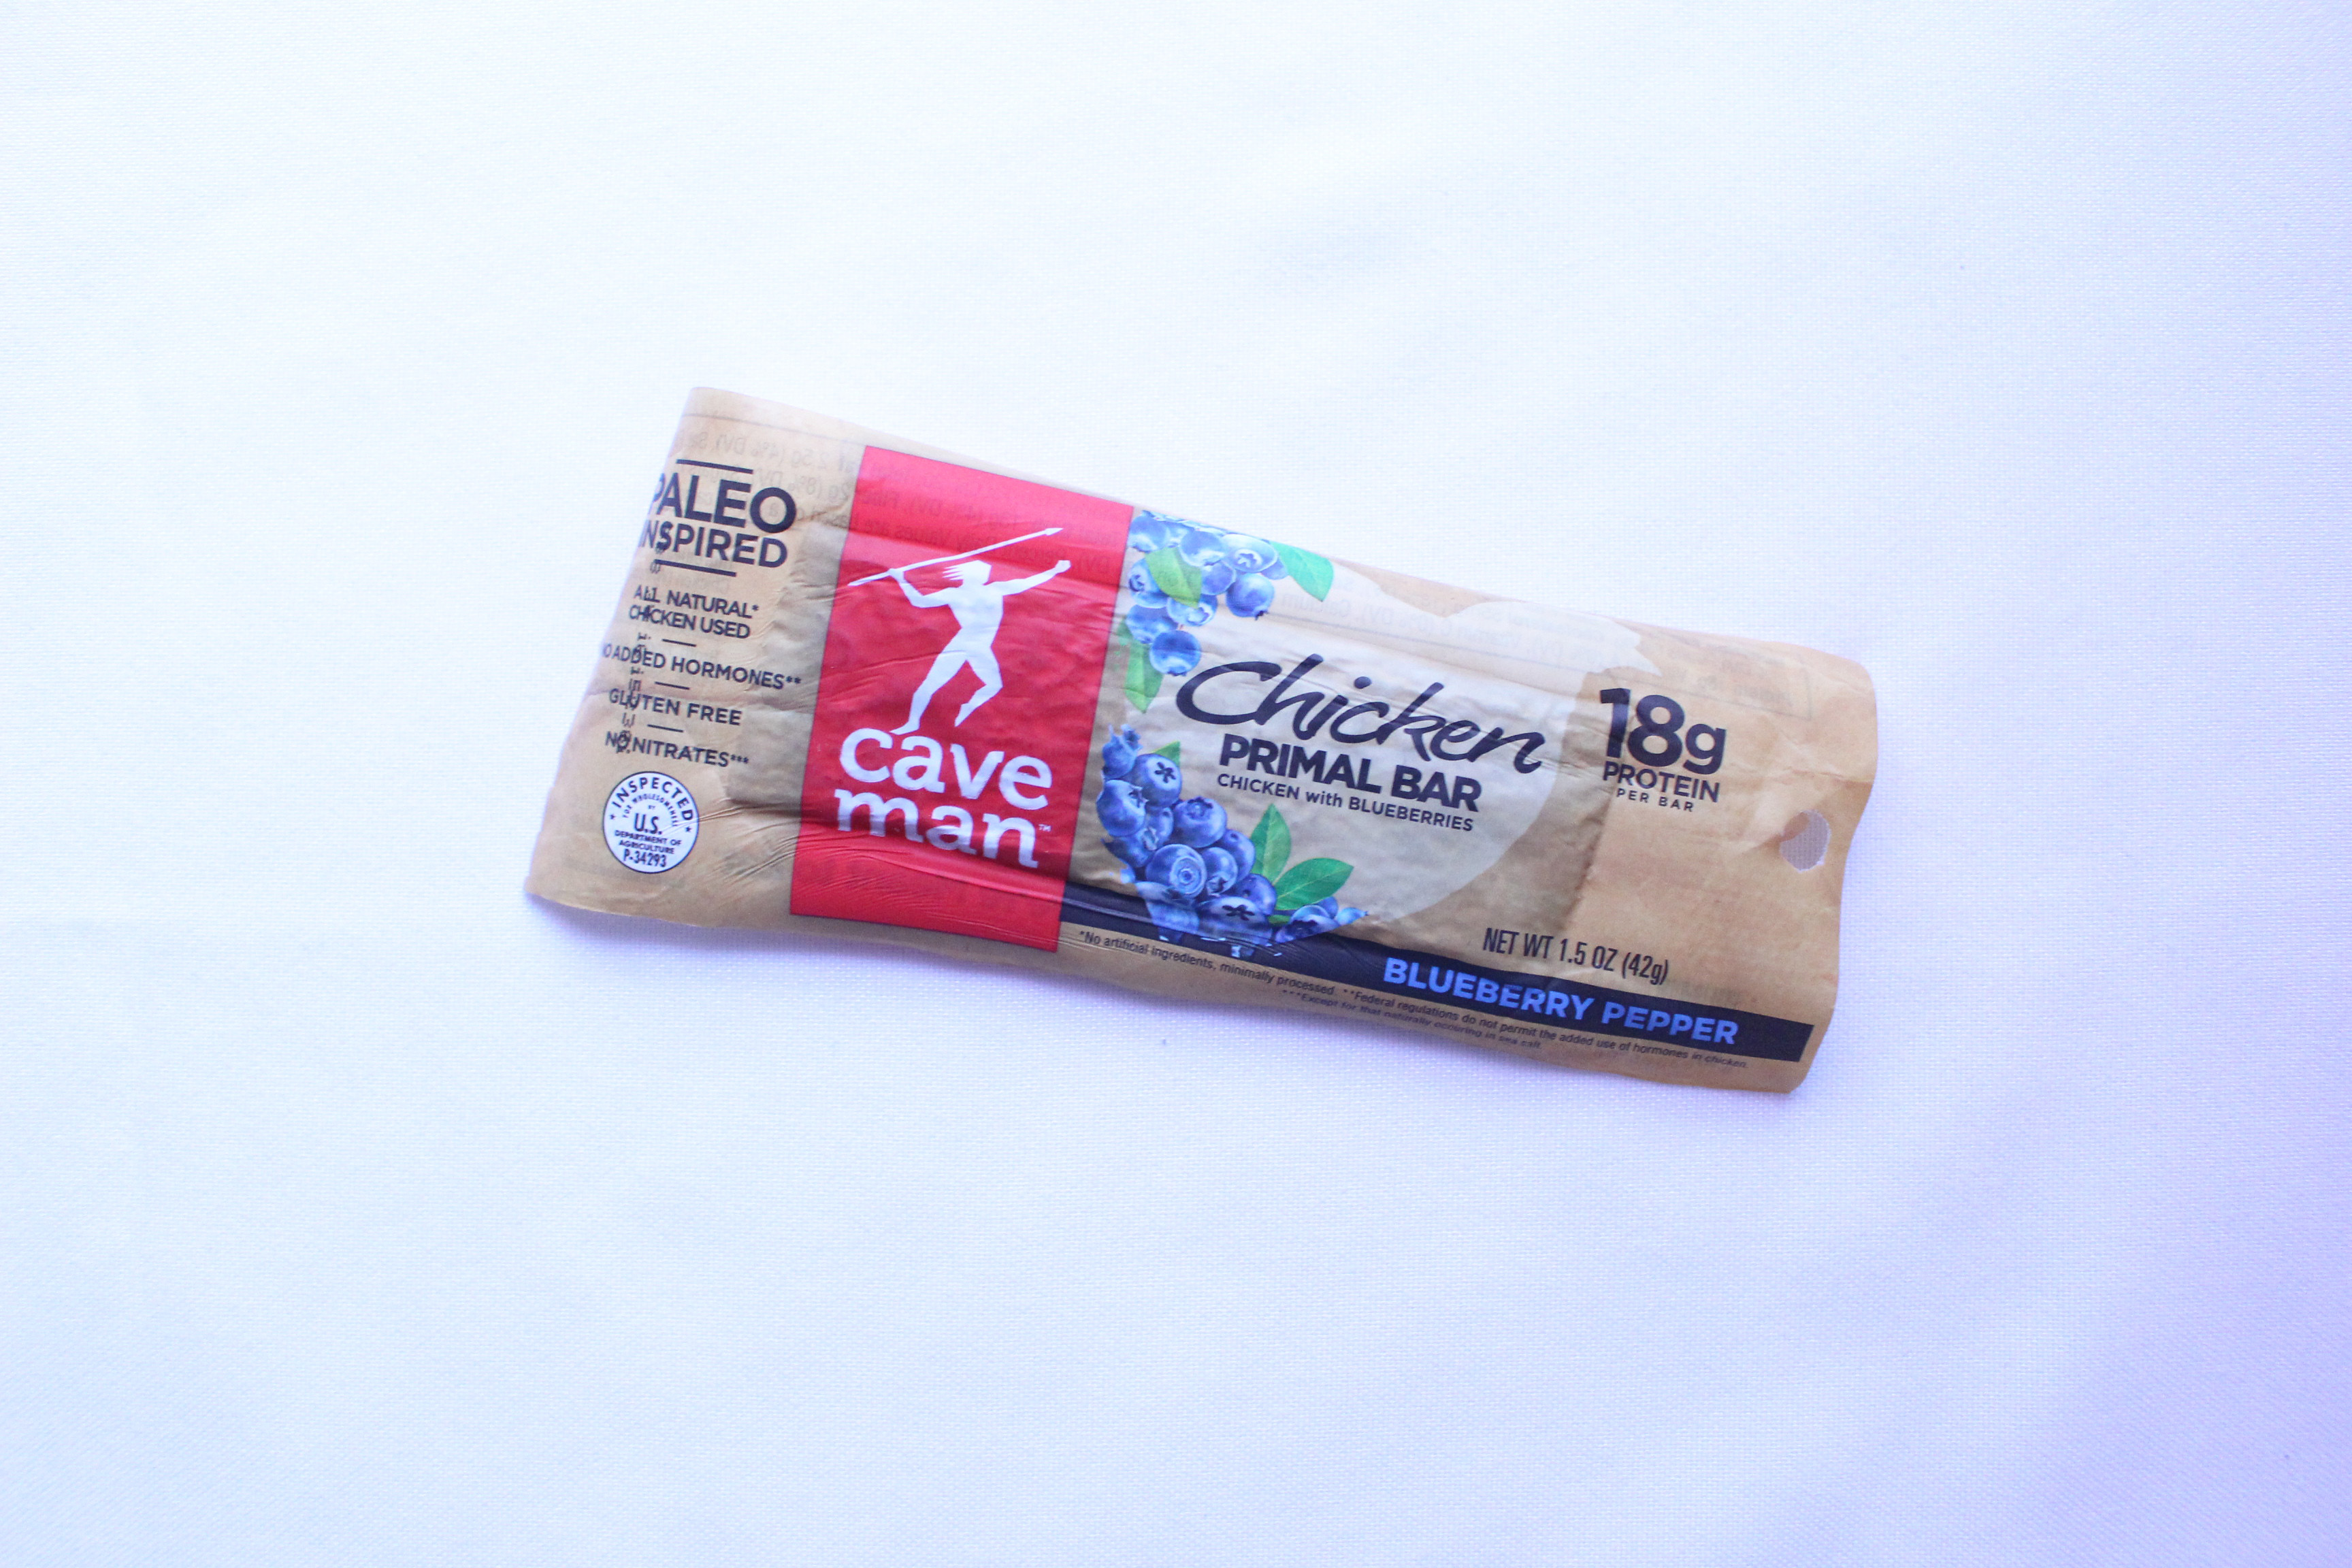 Cavemen Foods Chicken Primal Bars